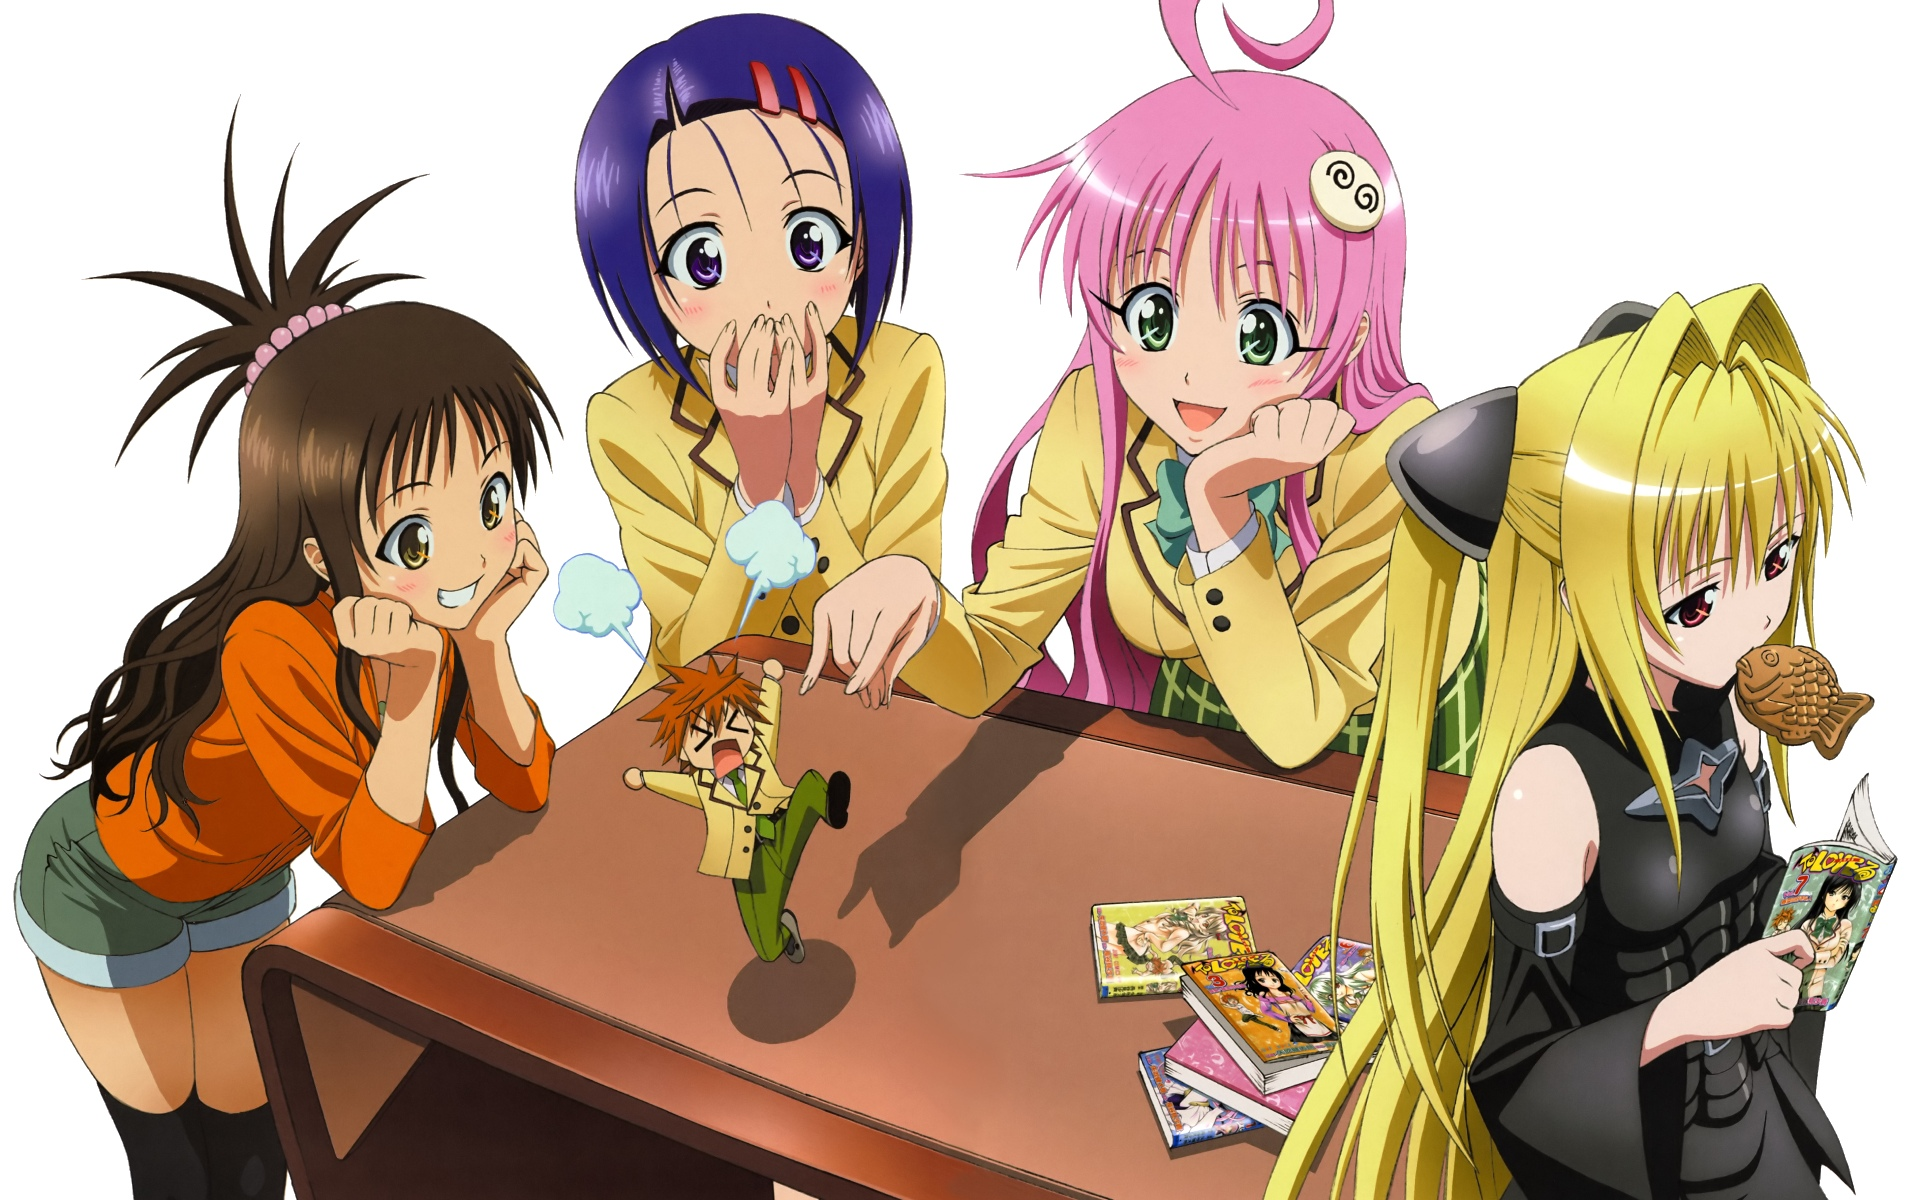 To Love Ru Golden Darkness Sairenji Haruna Lala Satalin